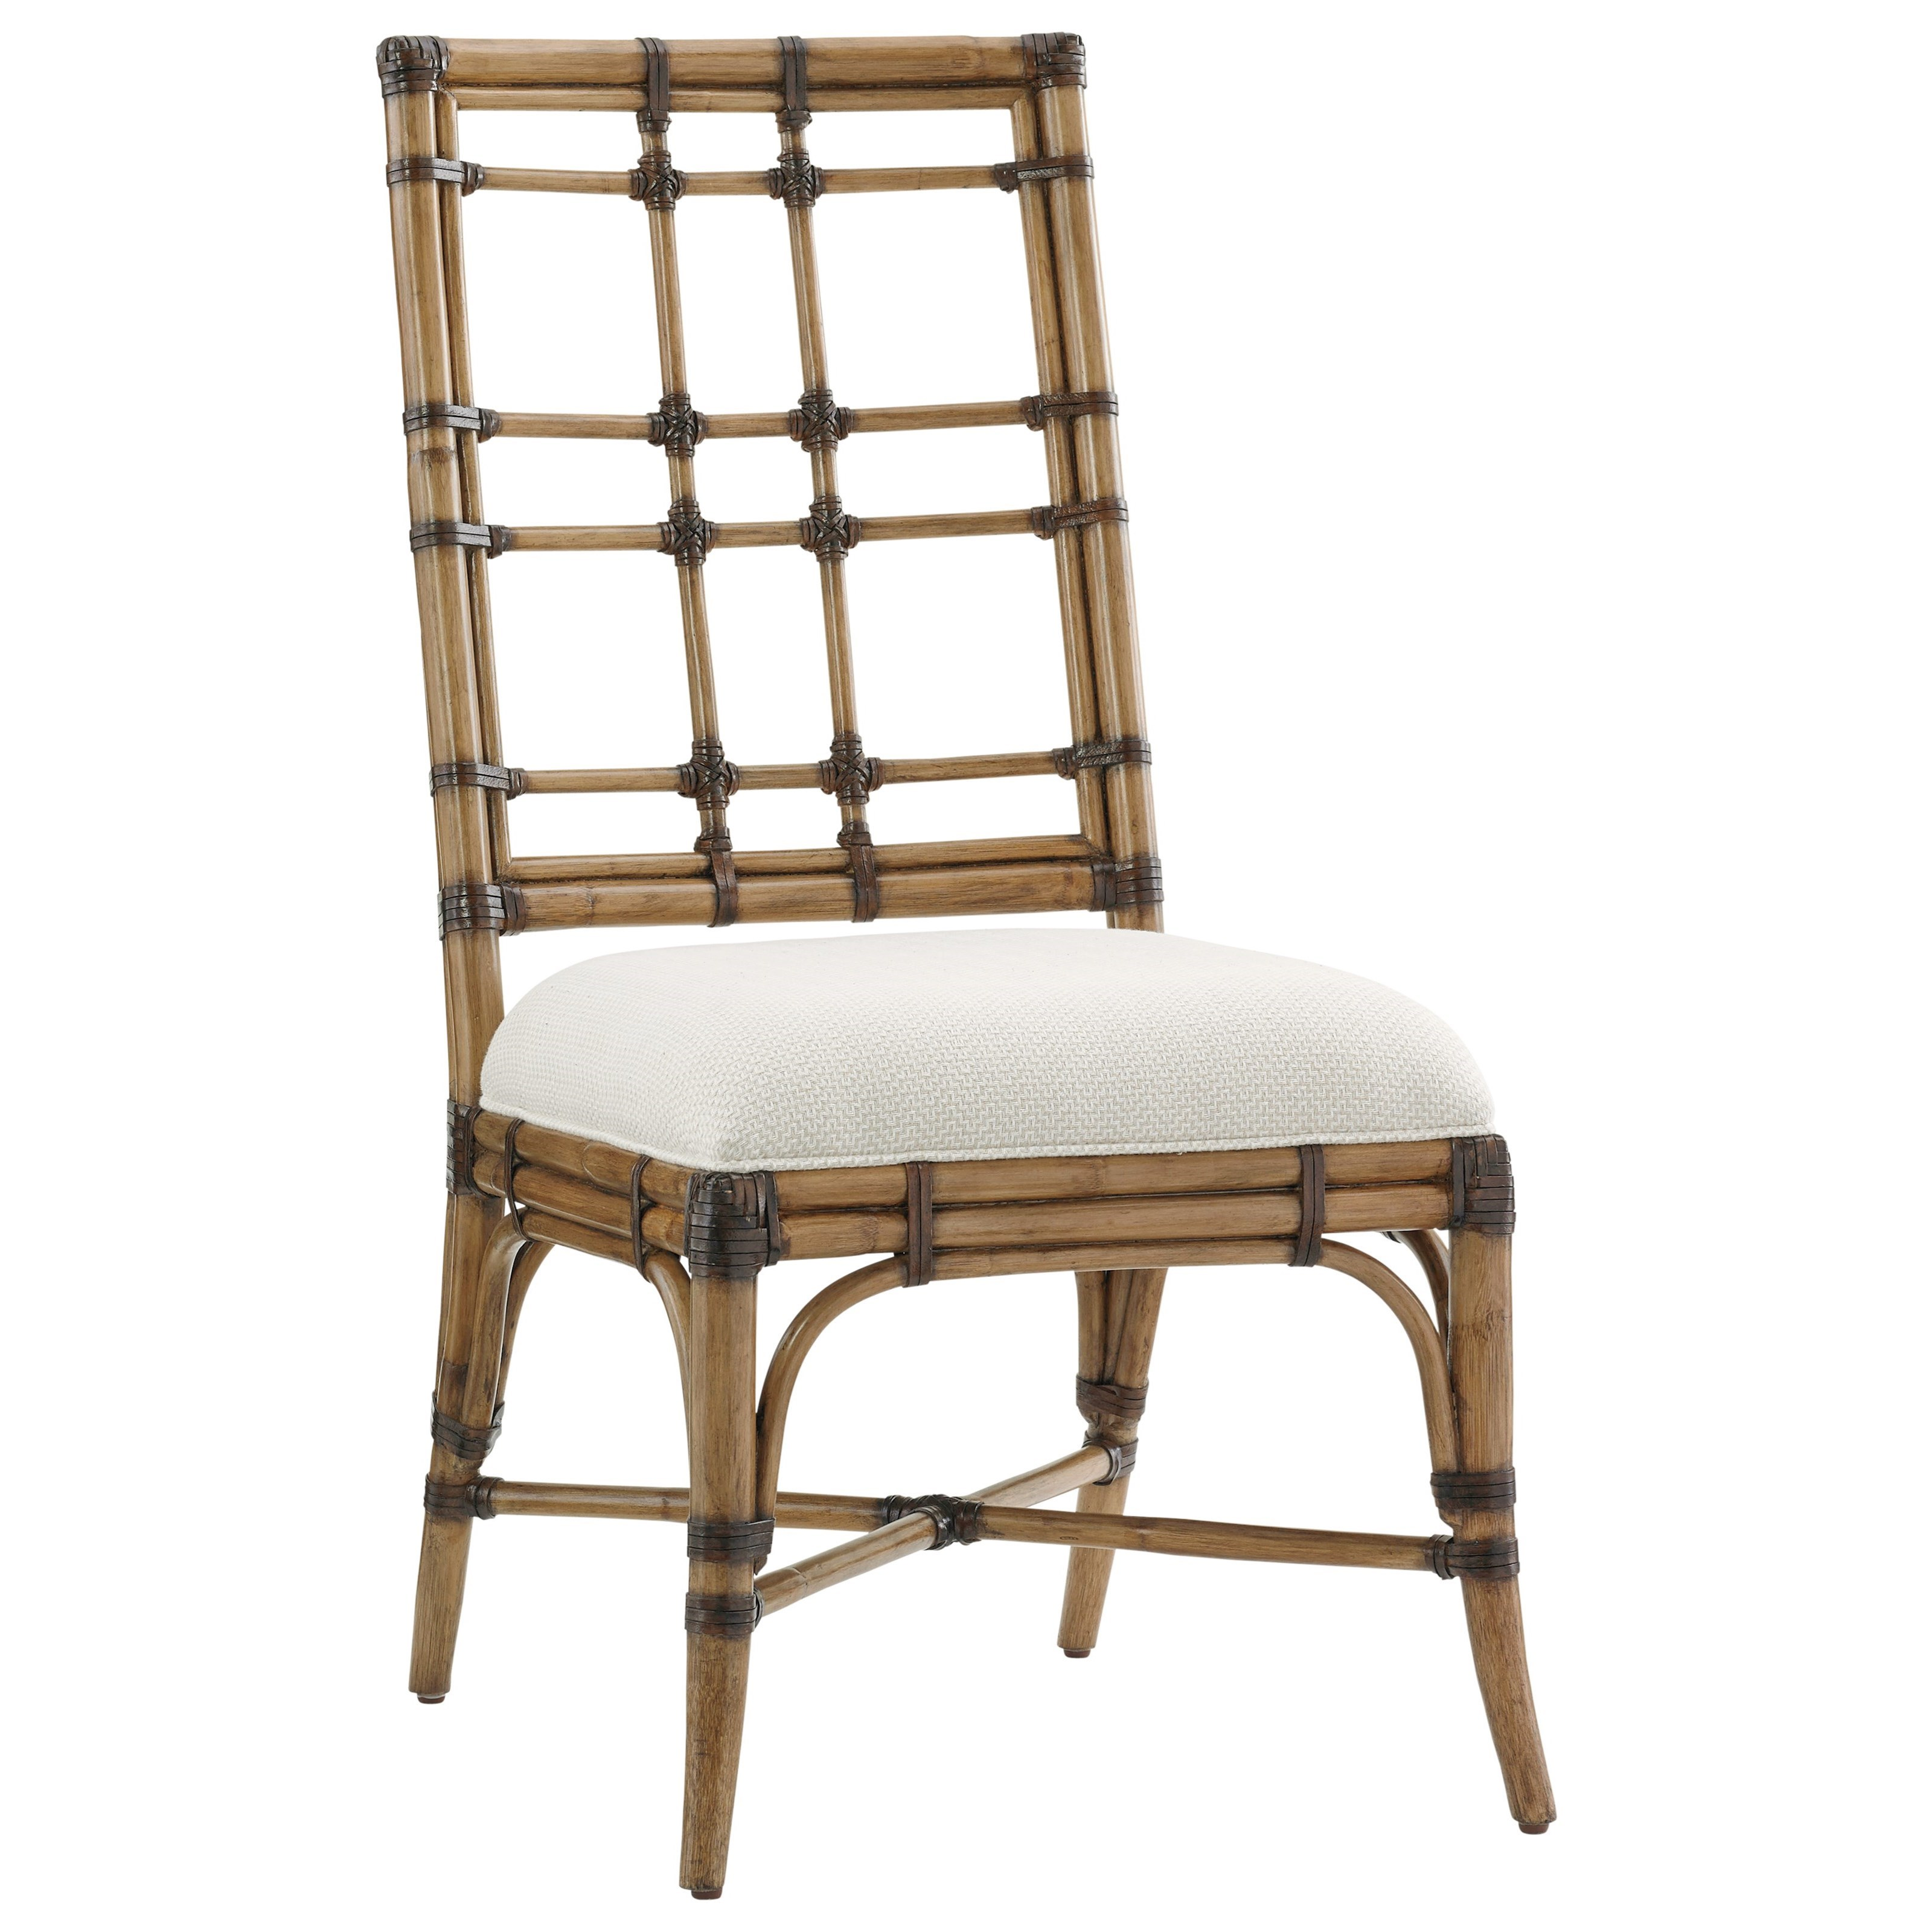 Tommy Bahama Home Twin Palms Seaview Side Chair (Married Fabric) - Item Number: 558-880-01